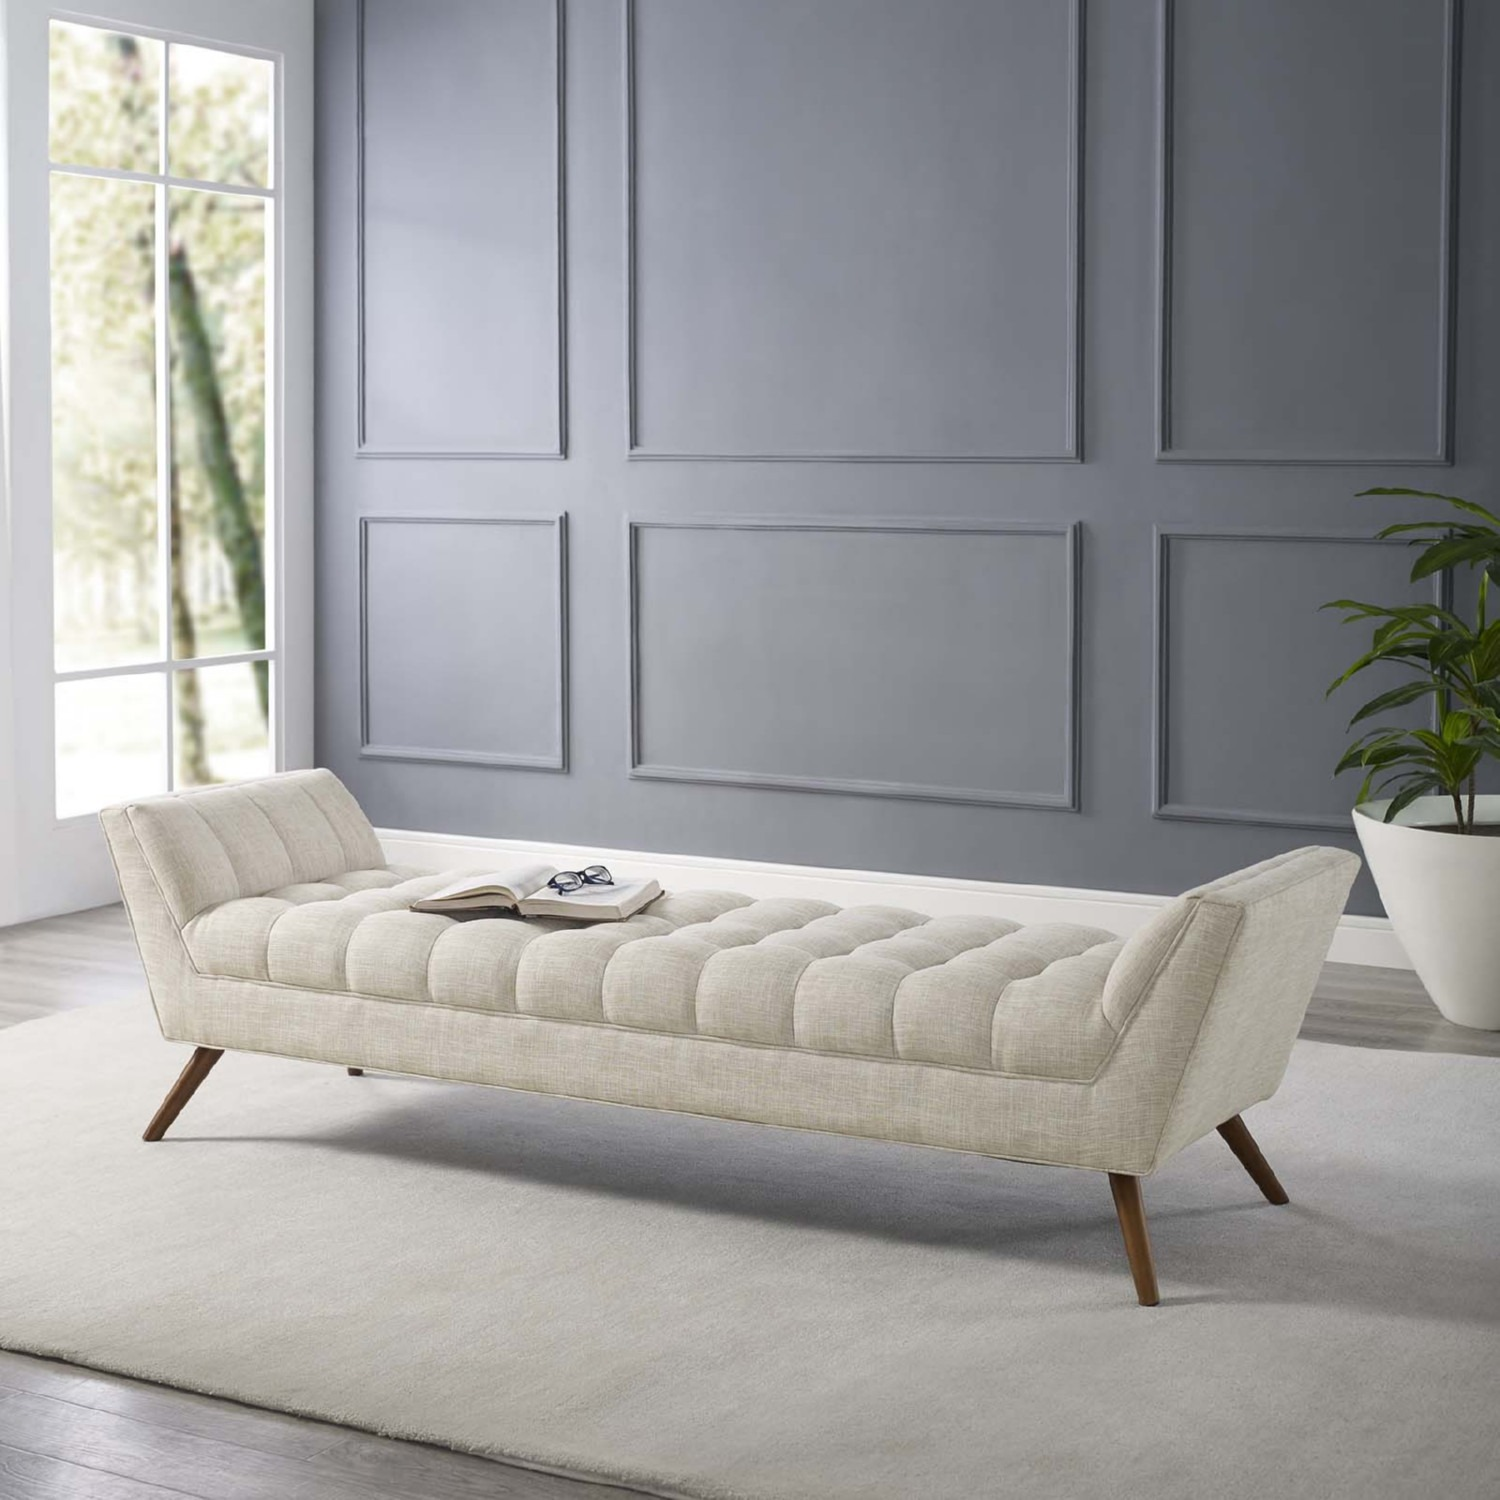 Bench In Beige Fabric Upholstery W/ Wood Legs - image-5